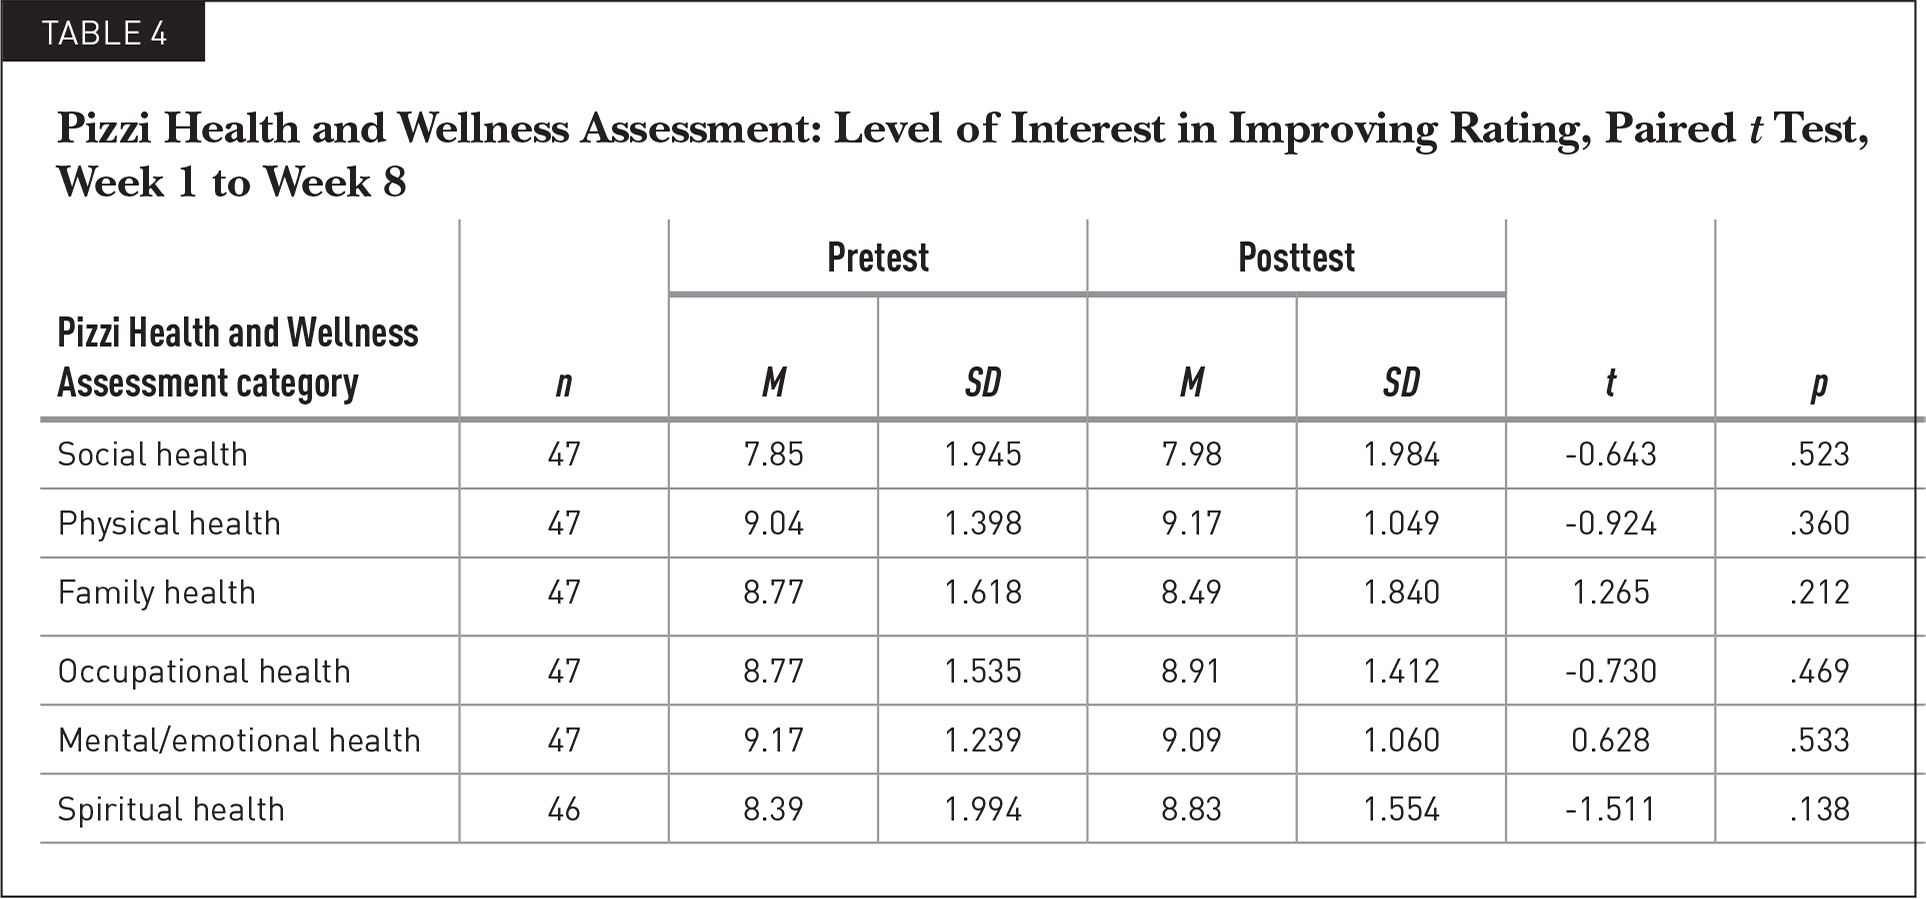 Pizzi Health and Wellness Assessment: Level of Interest in Improving Rating, Paired t Test, Week 1 to Week 8